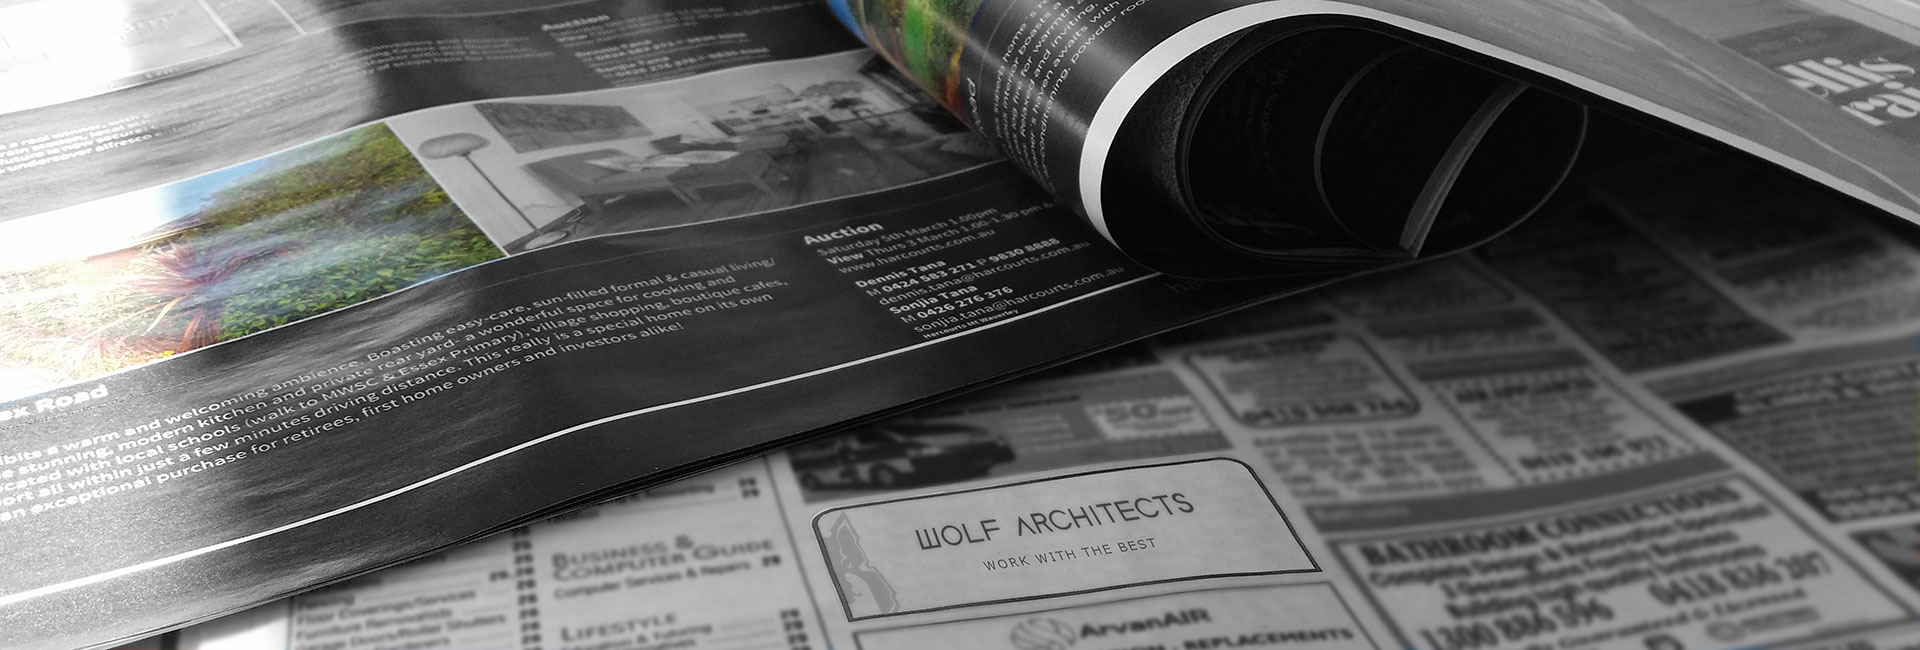 Wolf Architects Job Listing